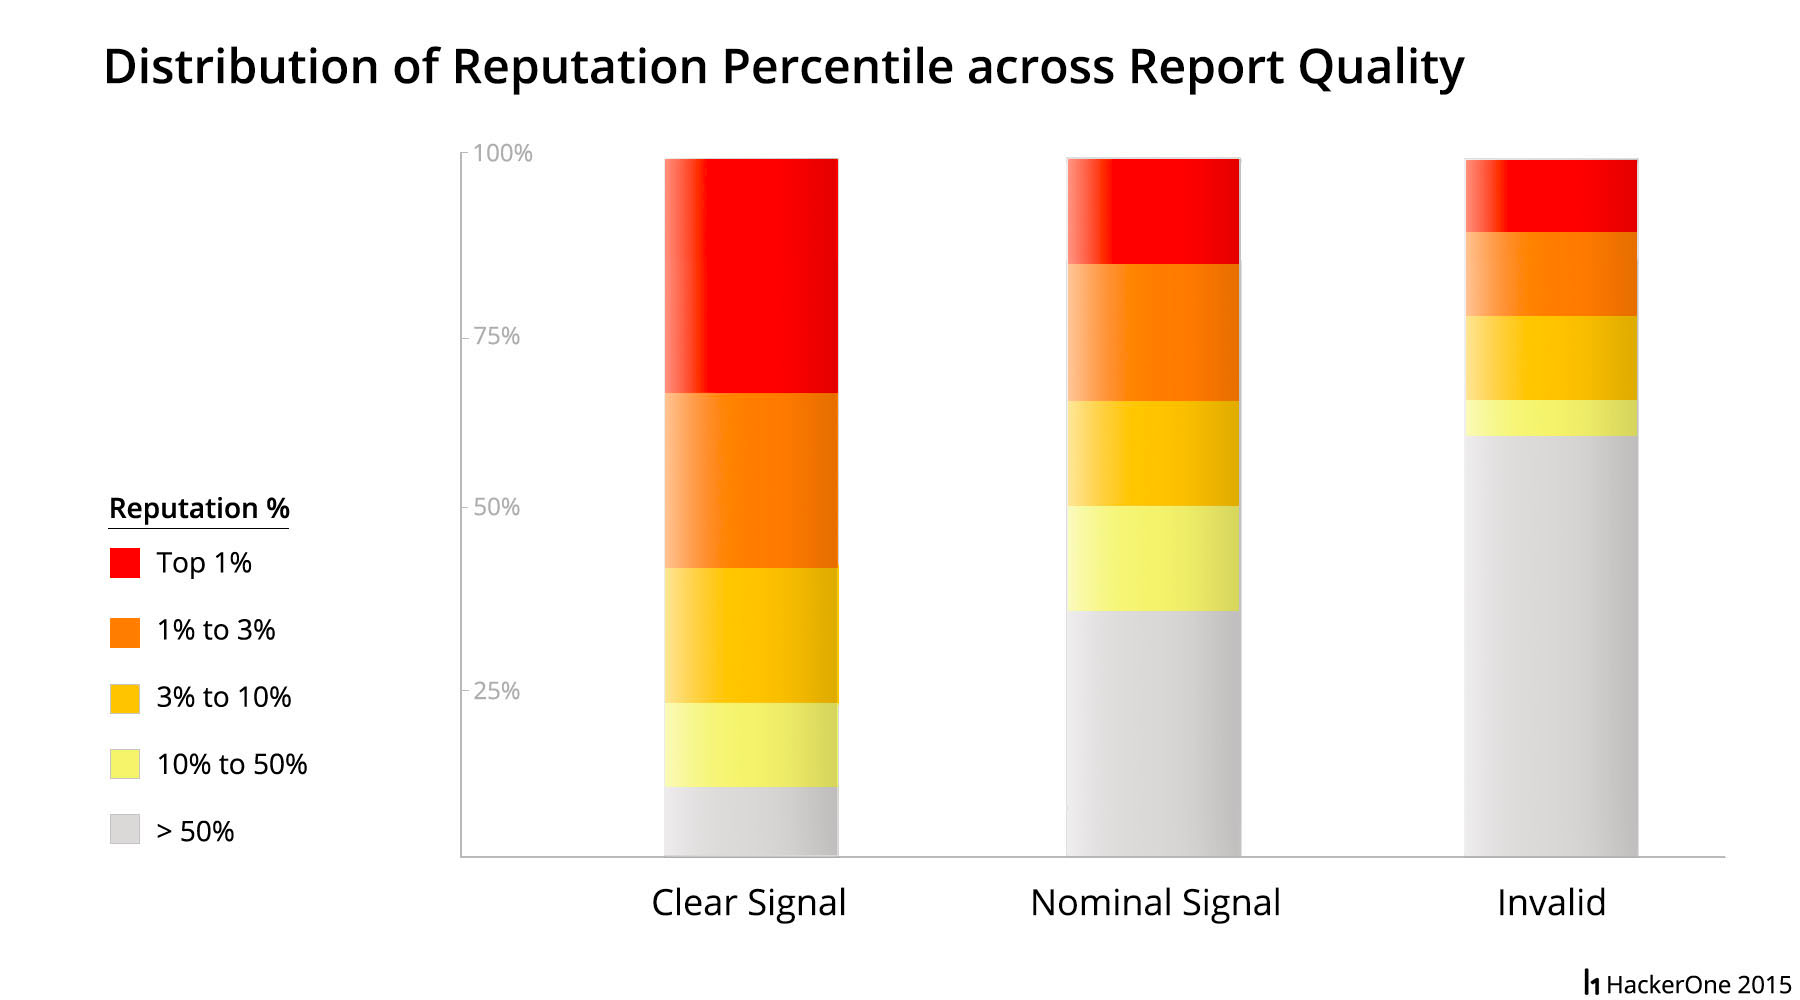 Distribution of Reputation Percentile across Report Quality